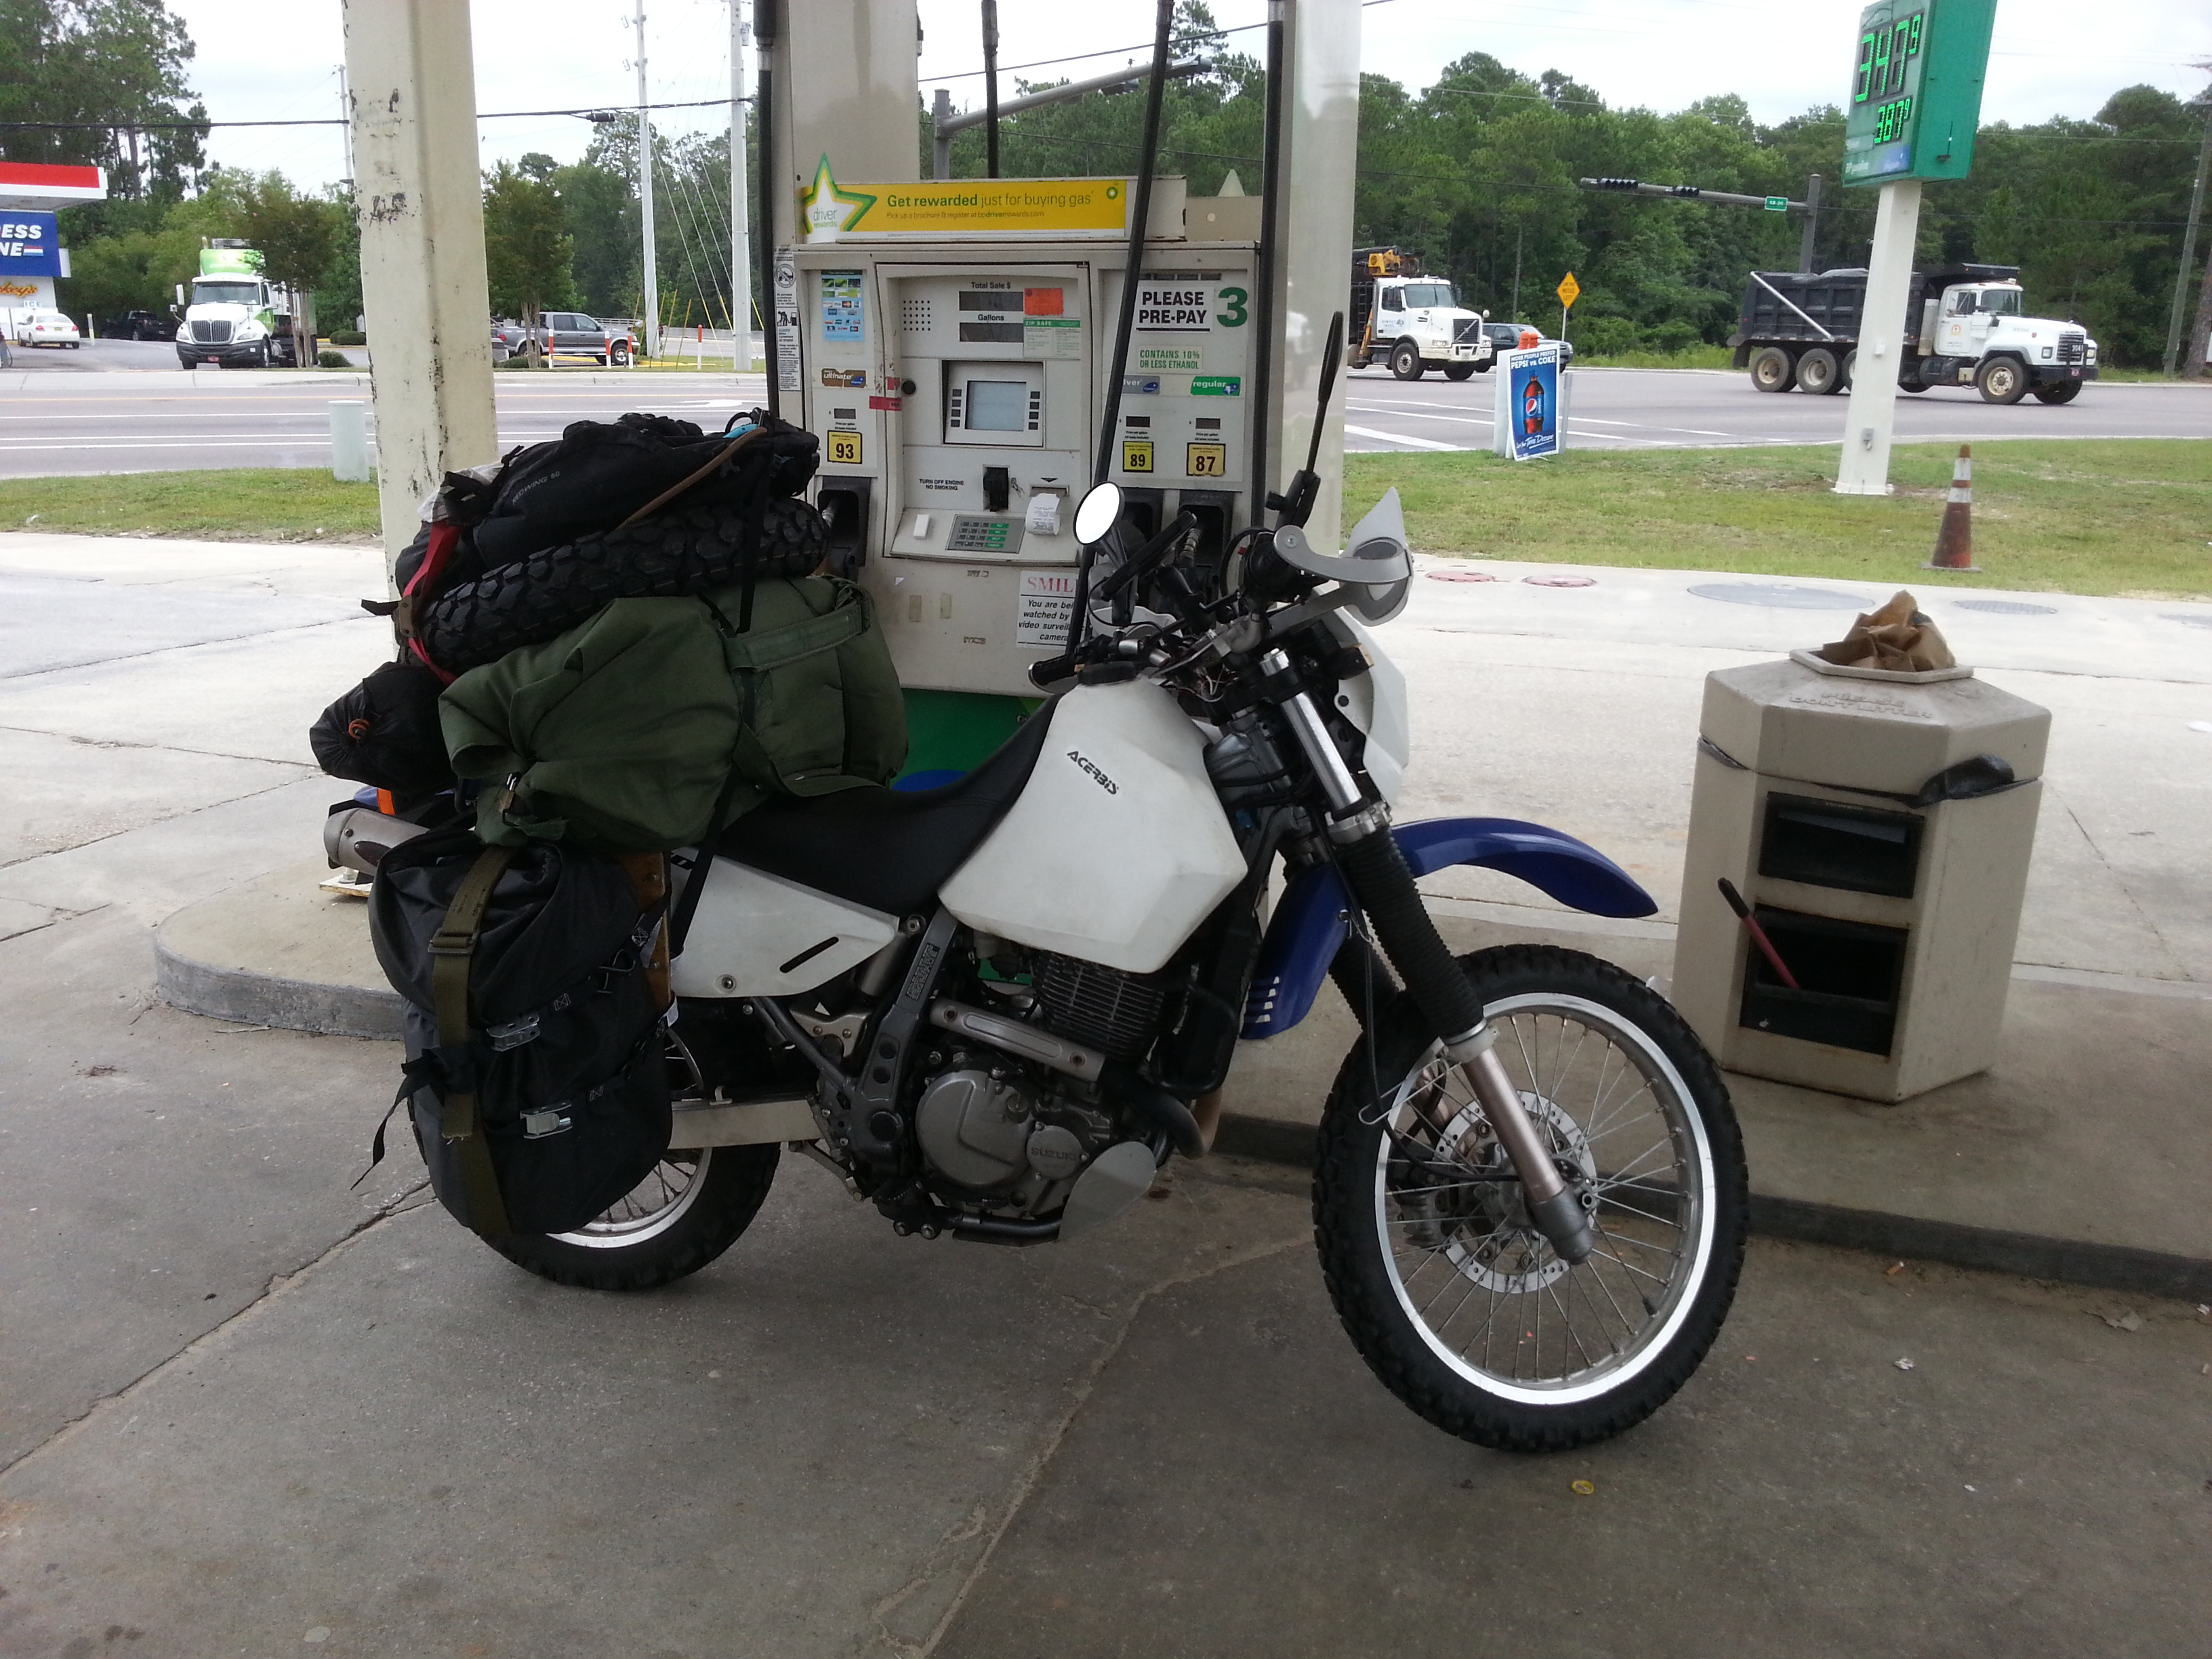 Loaded up at a gas station